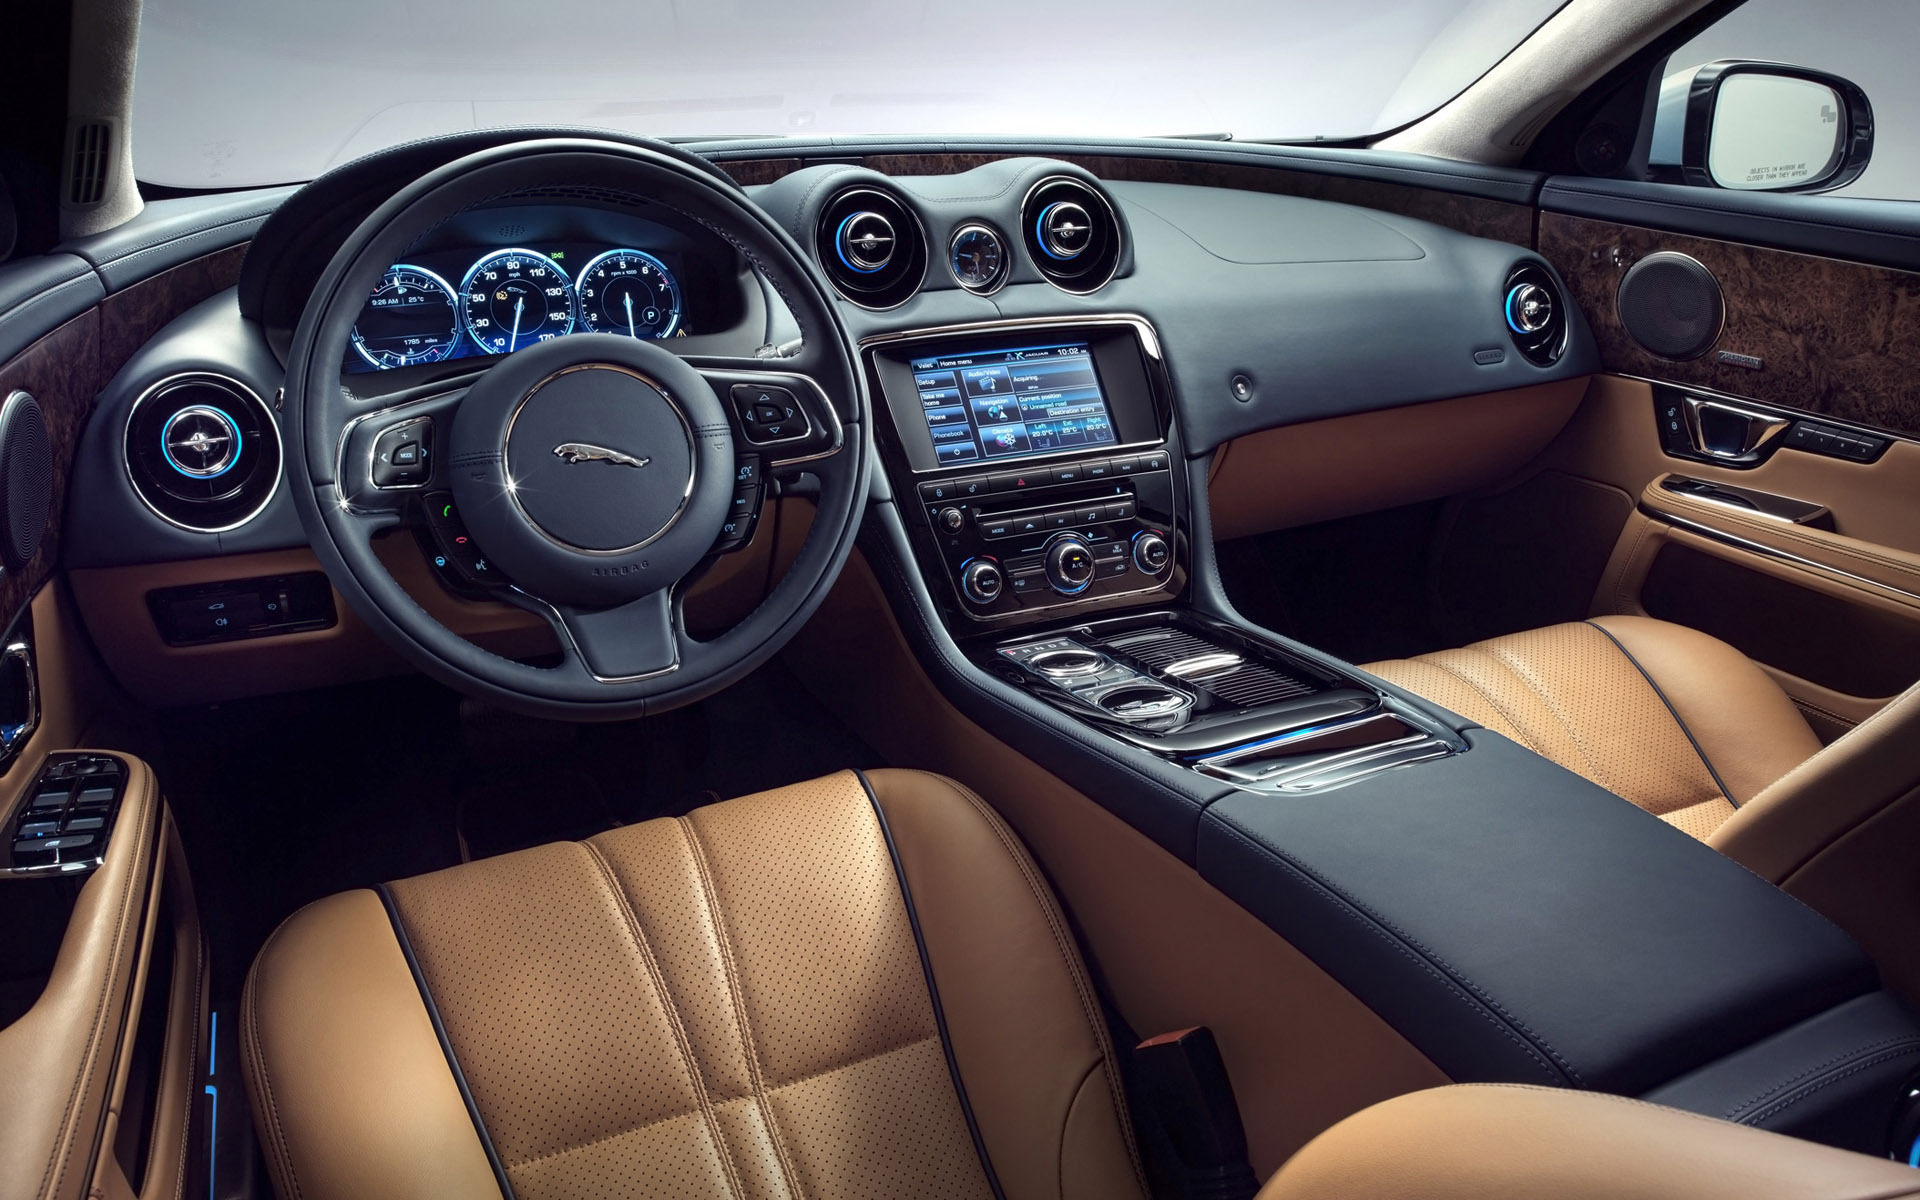 Jaguar Interior Wallpaper Hd 45809 1920x1200 Px Hdwallsource Com